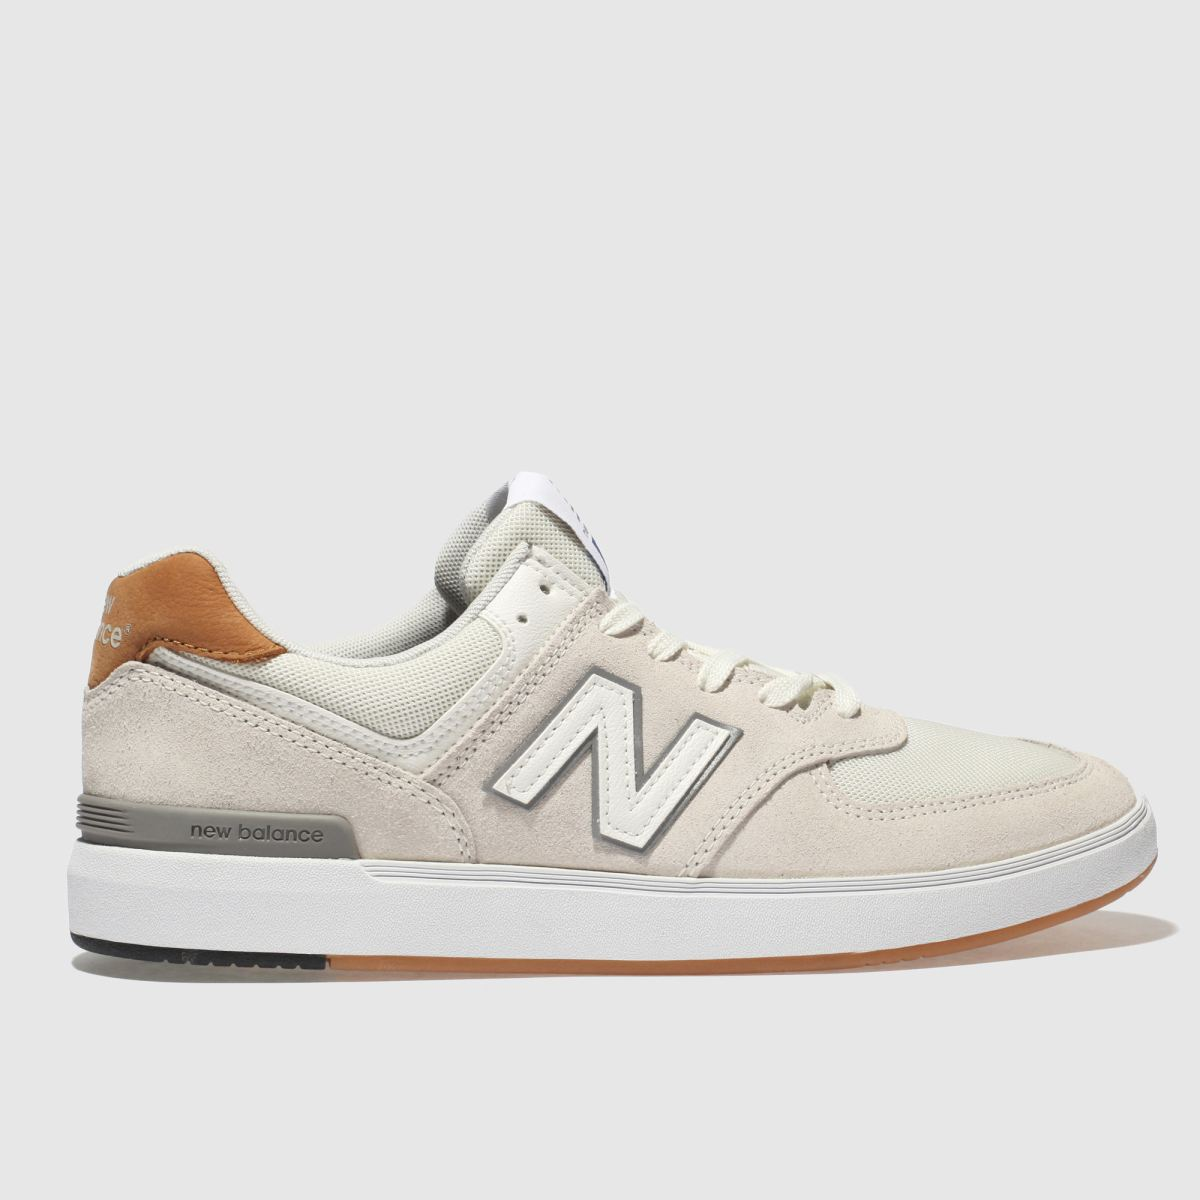 New Balance Stone All Coasts 574 Trainers